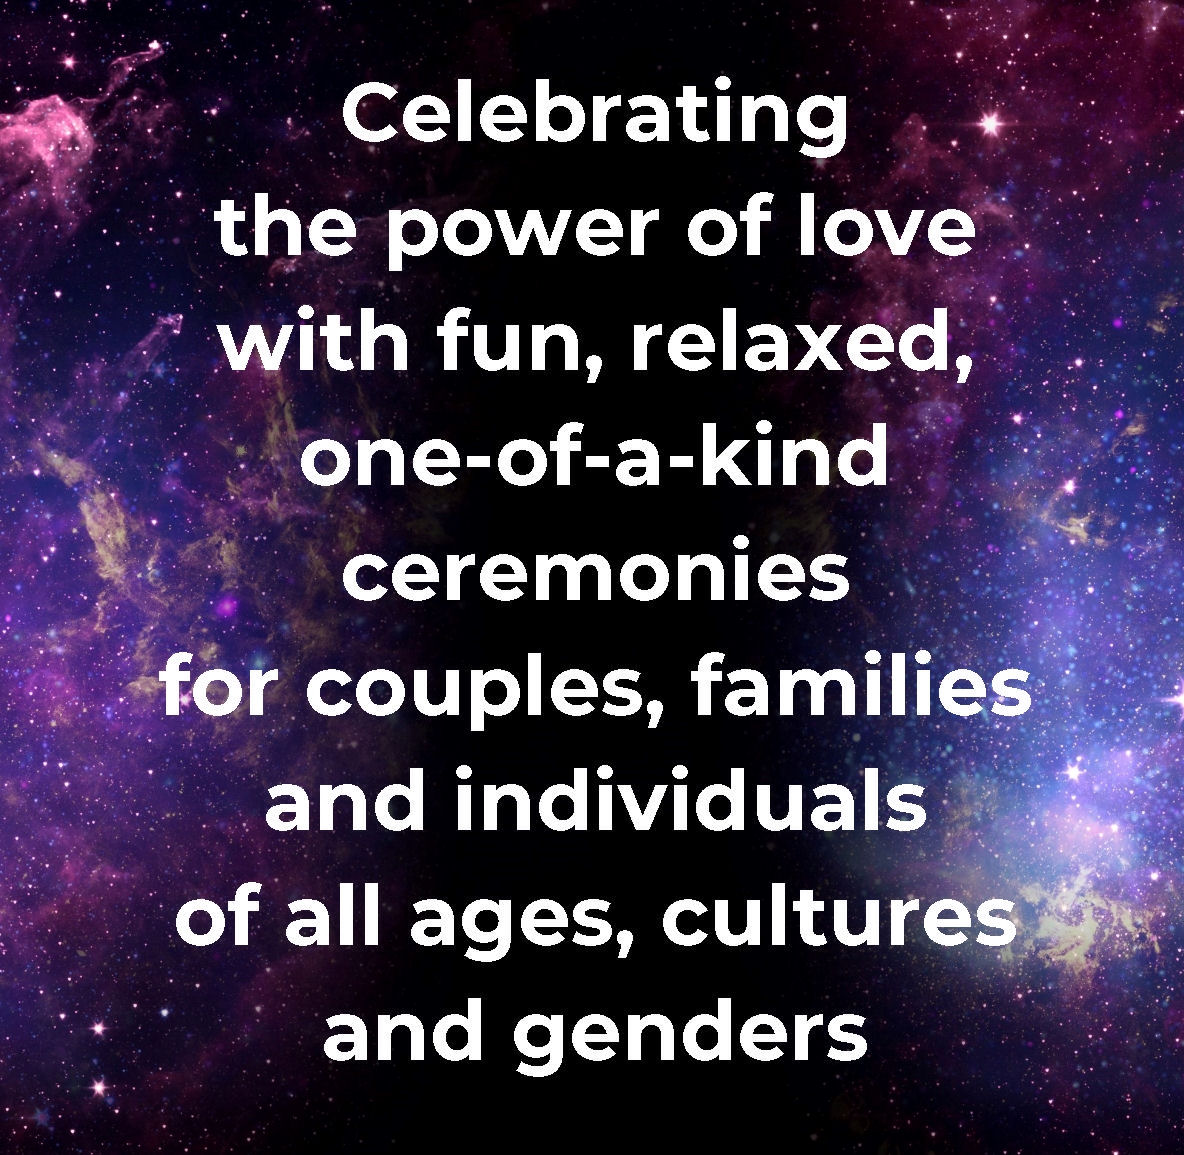 Celebrating the power of love